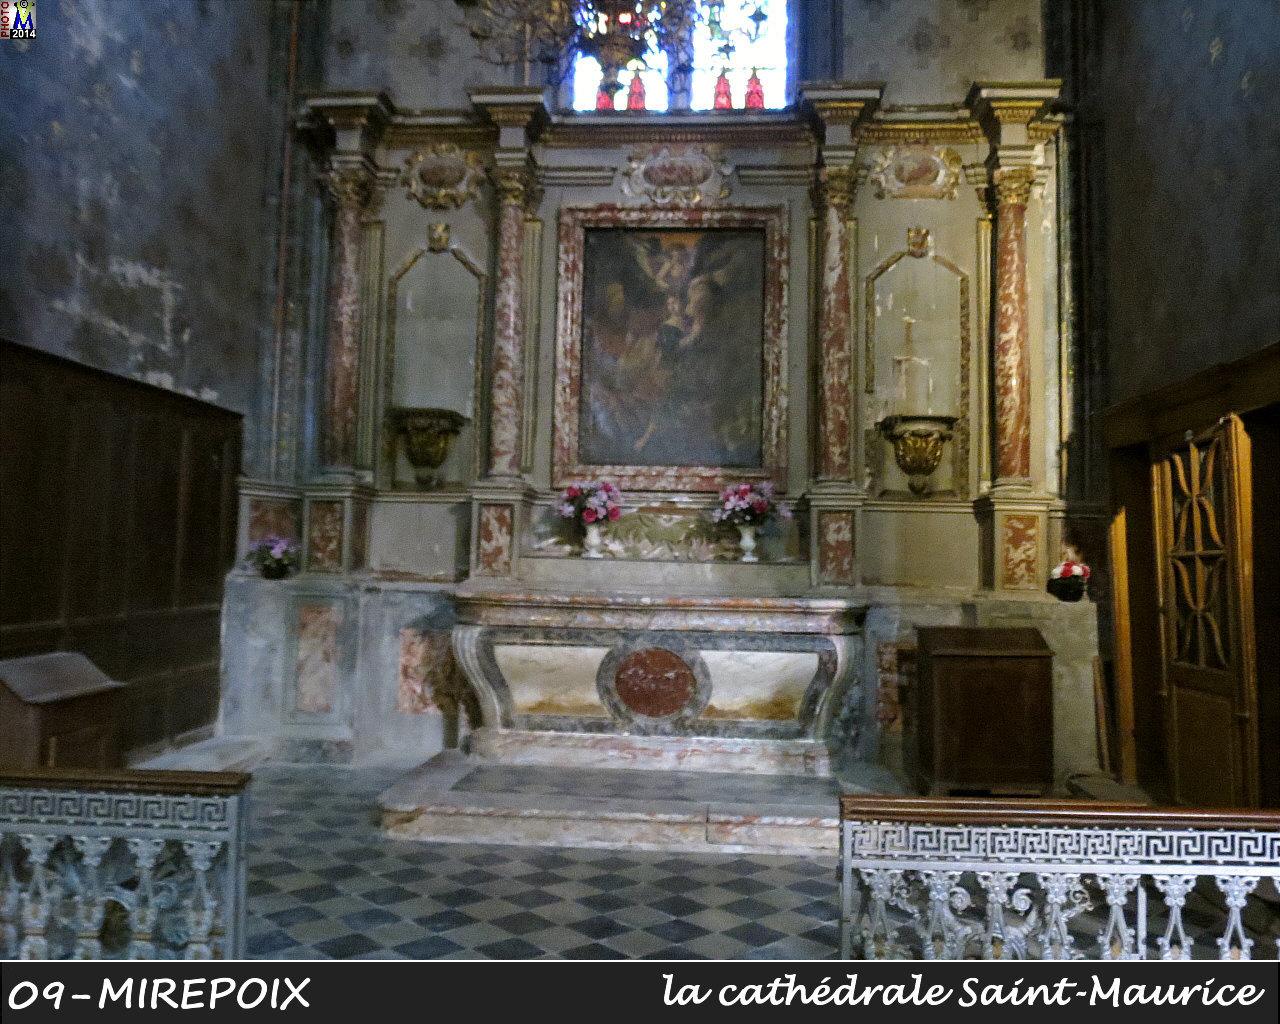 09MIREPOIX_cathedrale_212.jpg